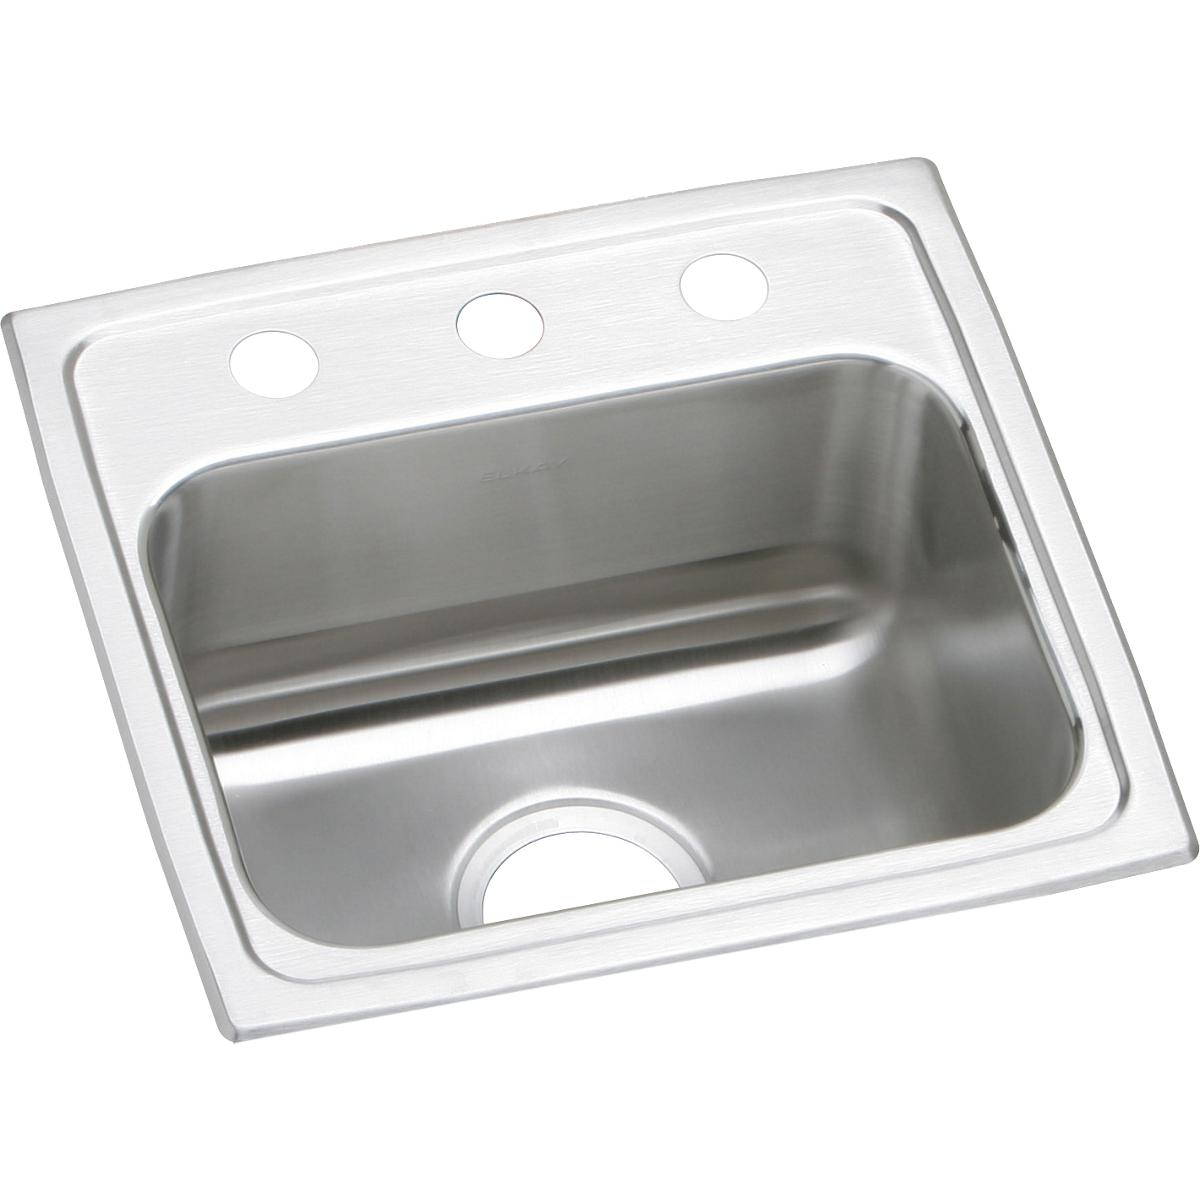 "Elkay Lustertone Classic Stainless Steel 17"" x 16"" x 7-5/8"", Single Bowl Drop-in Sink"